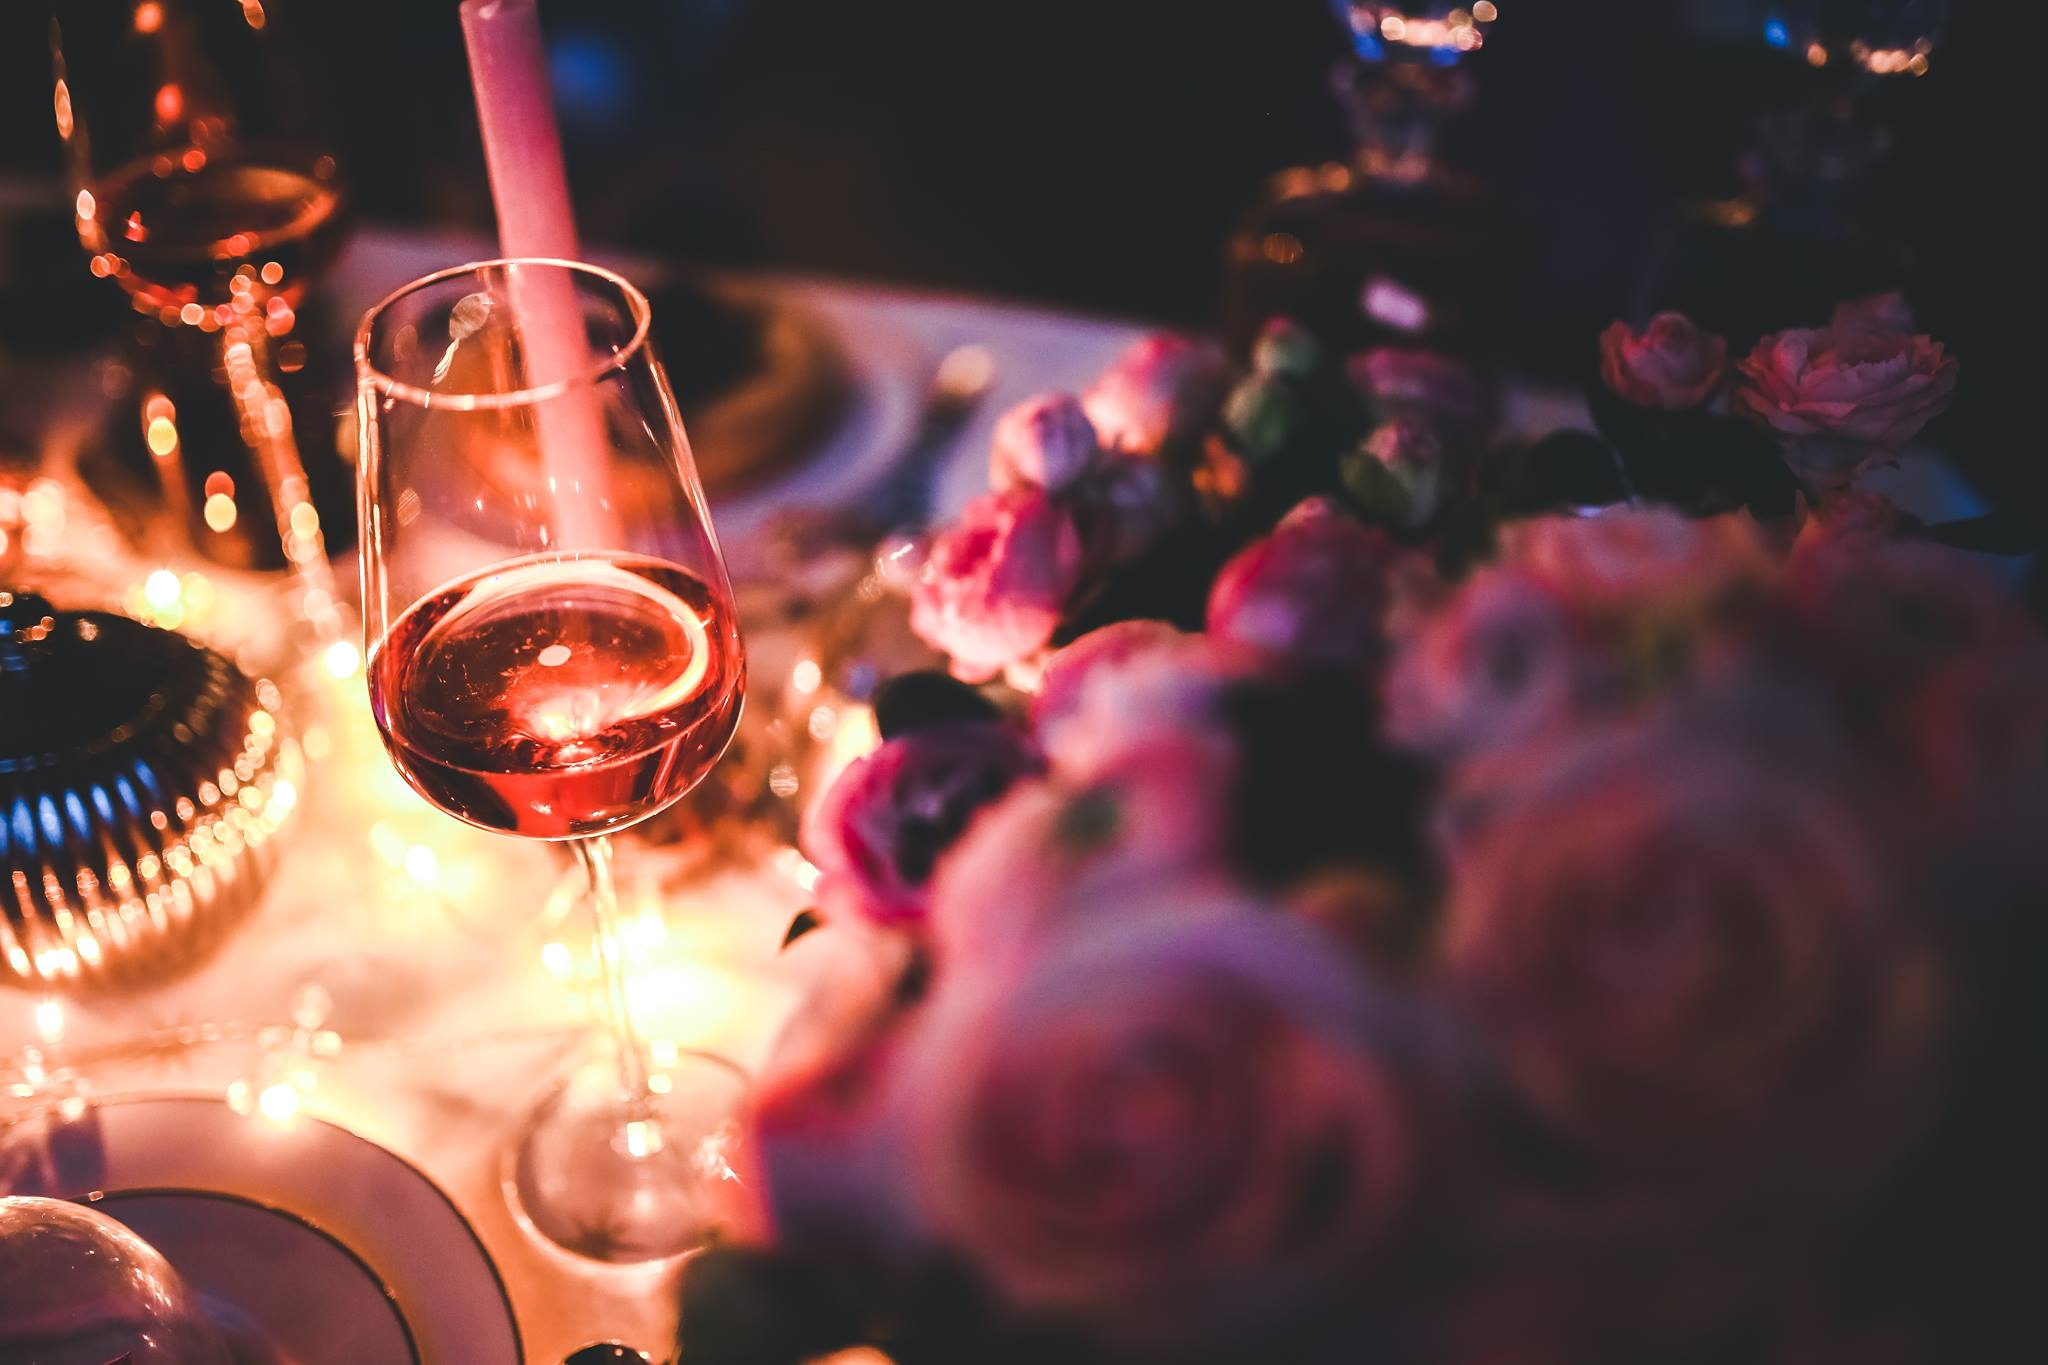 A wine glass sits on an elegantly decorated table, bathed in warm light